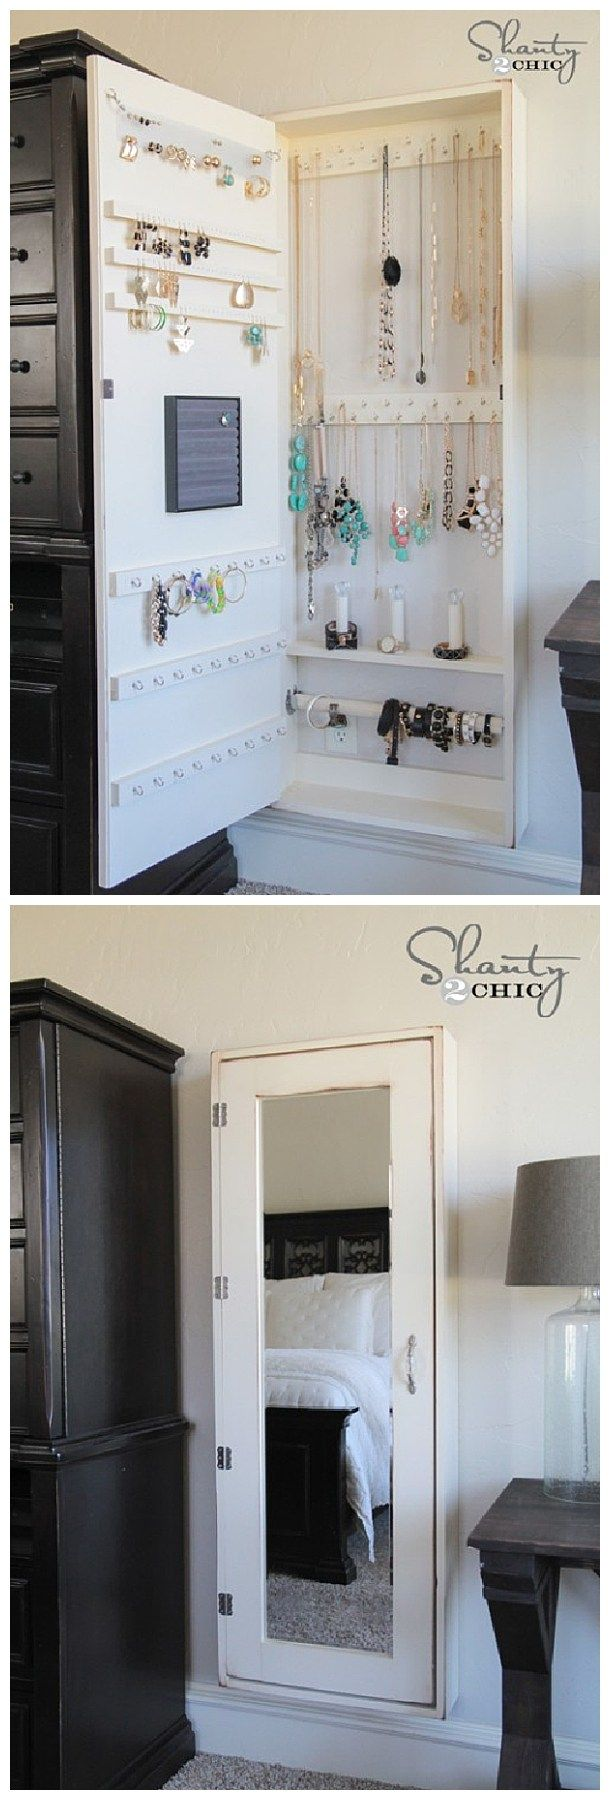 EASY Inexpensive Do it Yourself Ways to Organize and Decorate your Bathroom and Vanity {The BEST DIY Space Saving Projects and Organizing Ideas on a Budget} – Page 3 – Dreaming in DIY